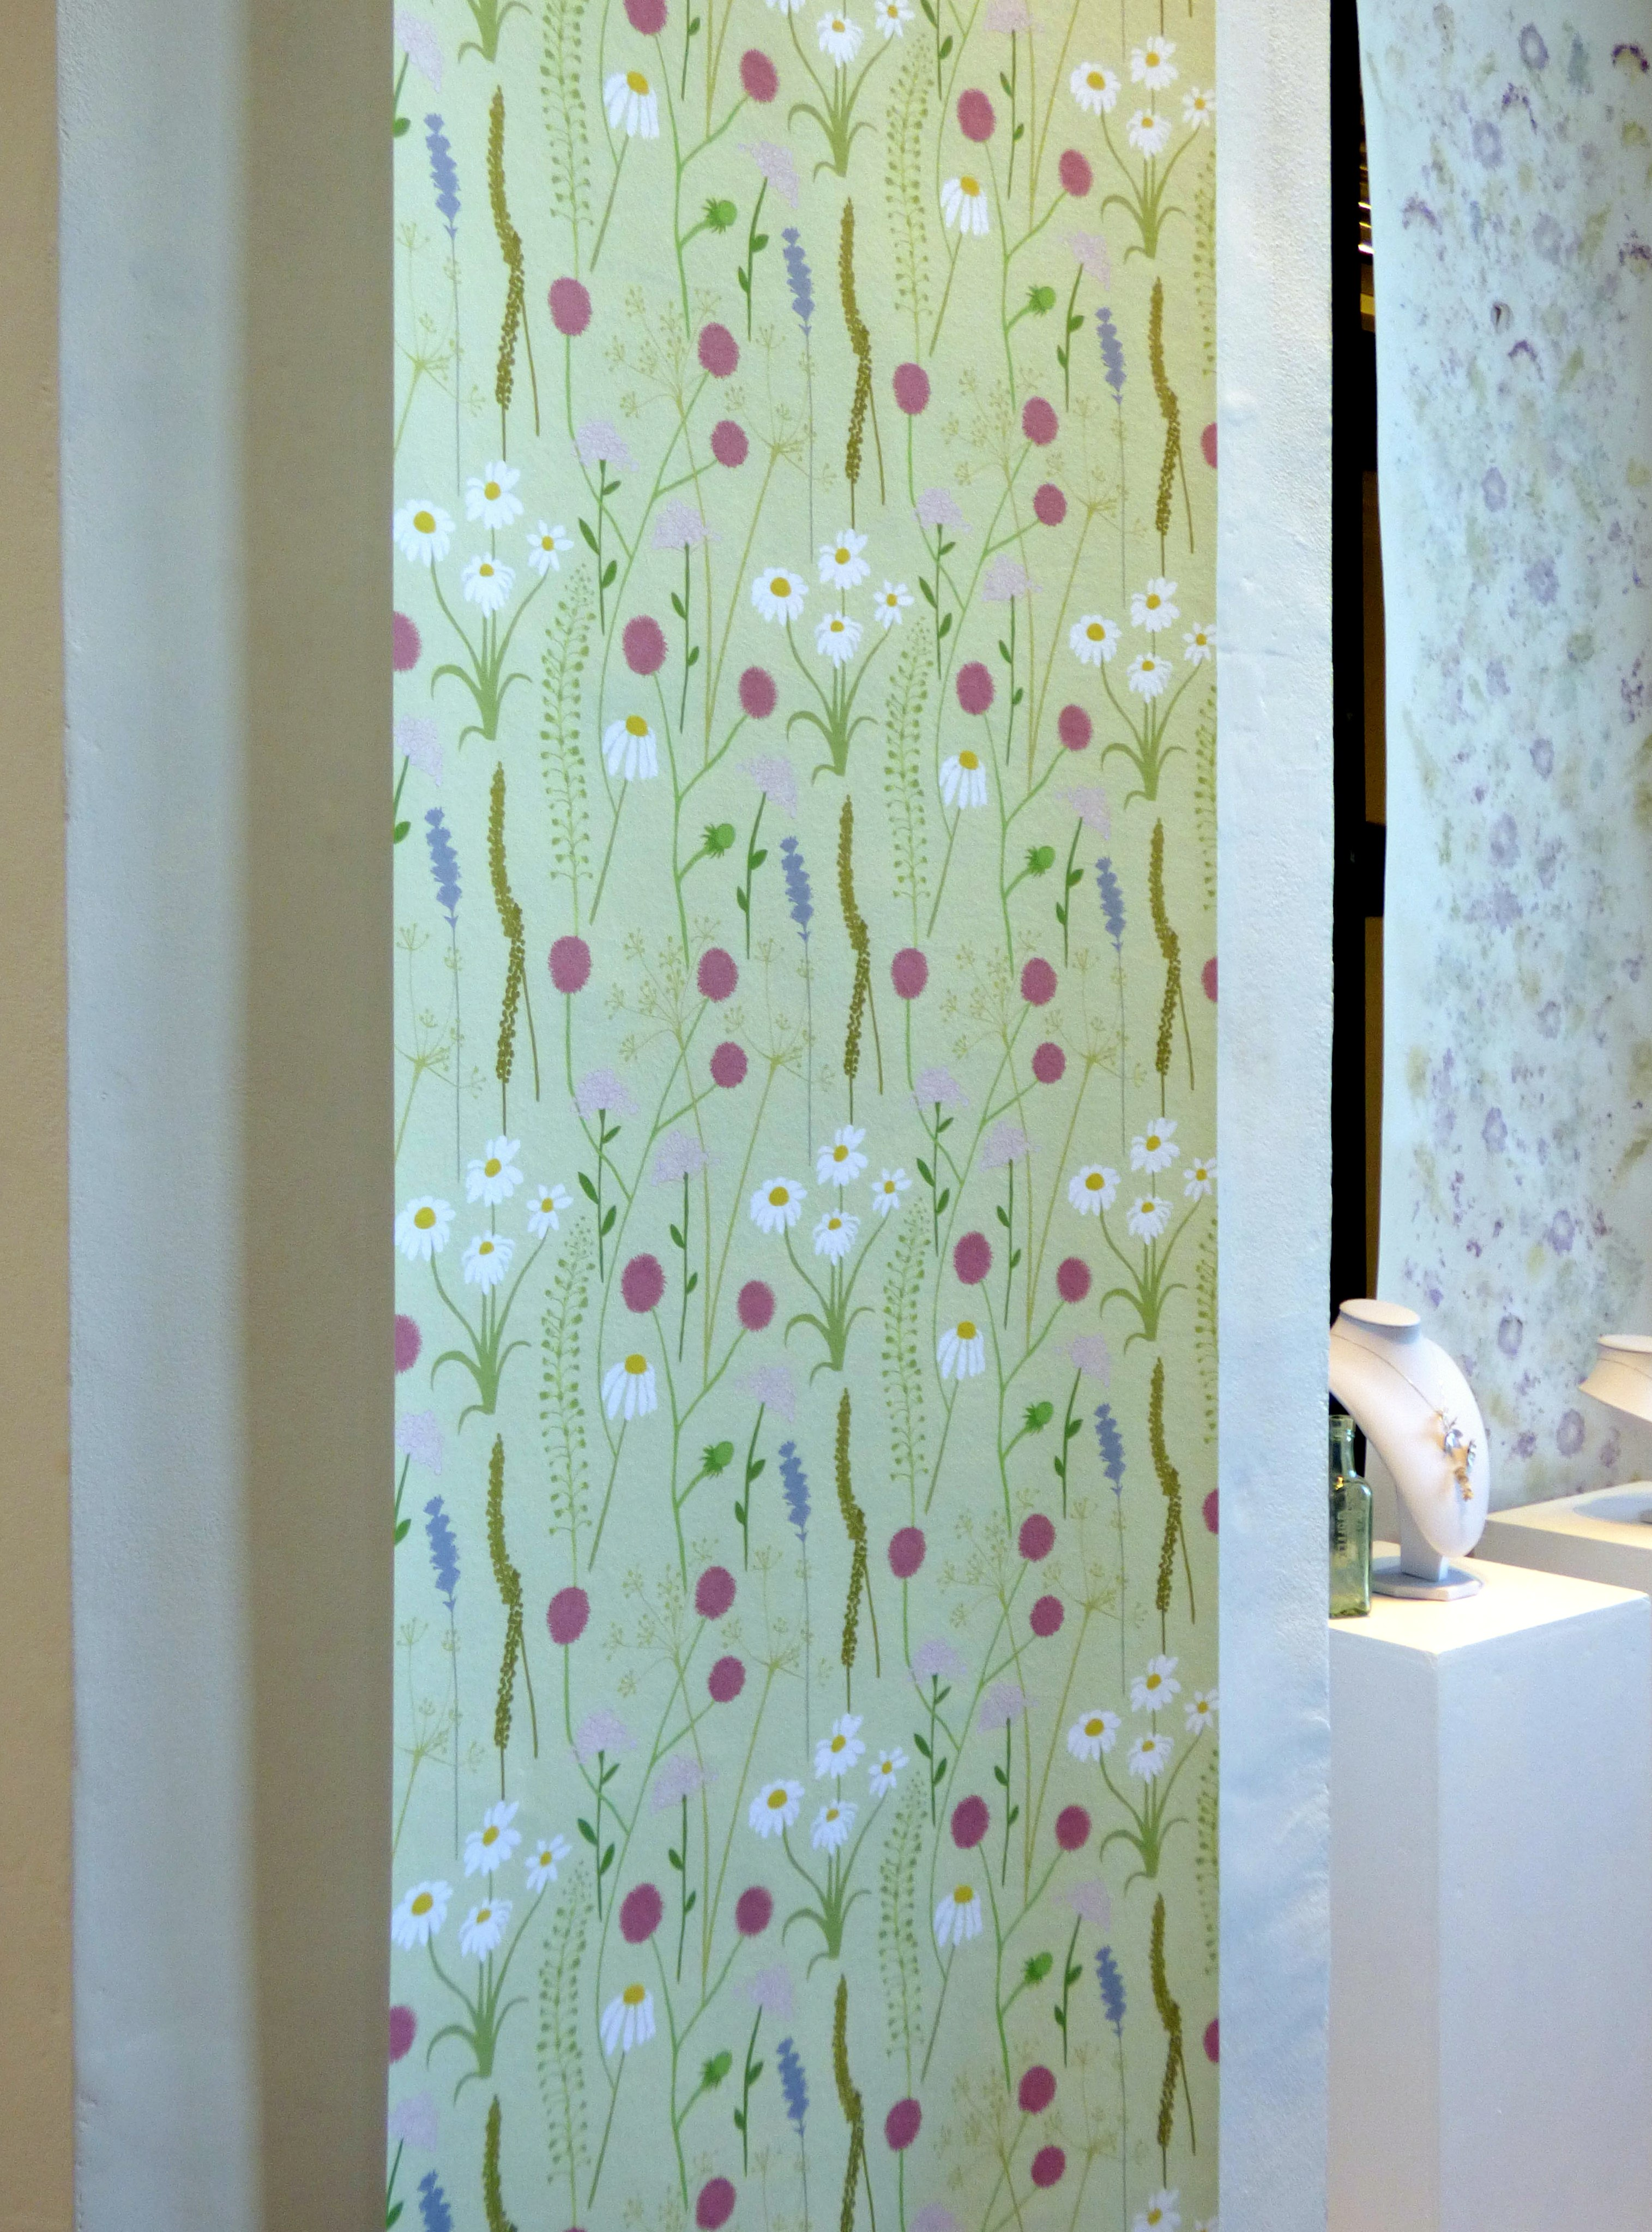 wallpaper designs based on wildflowers by Grace Scullen at Hope Univ Degree Show 2017